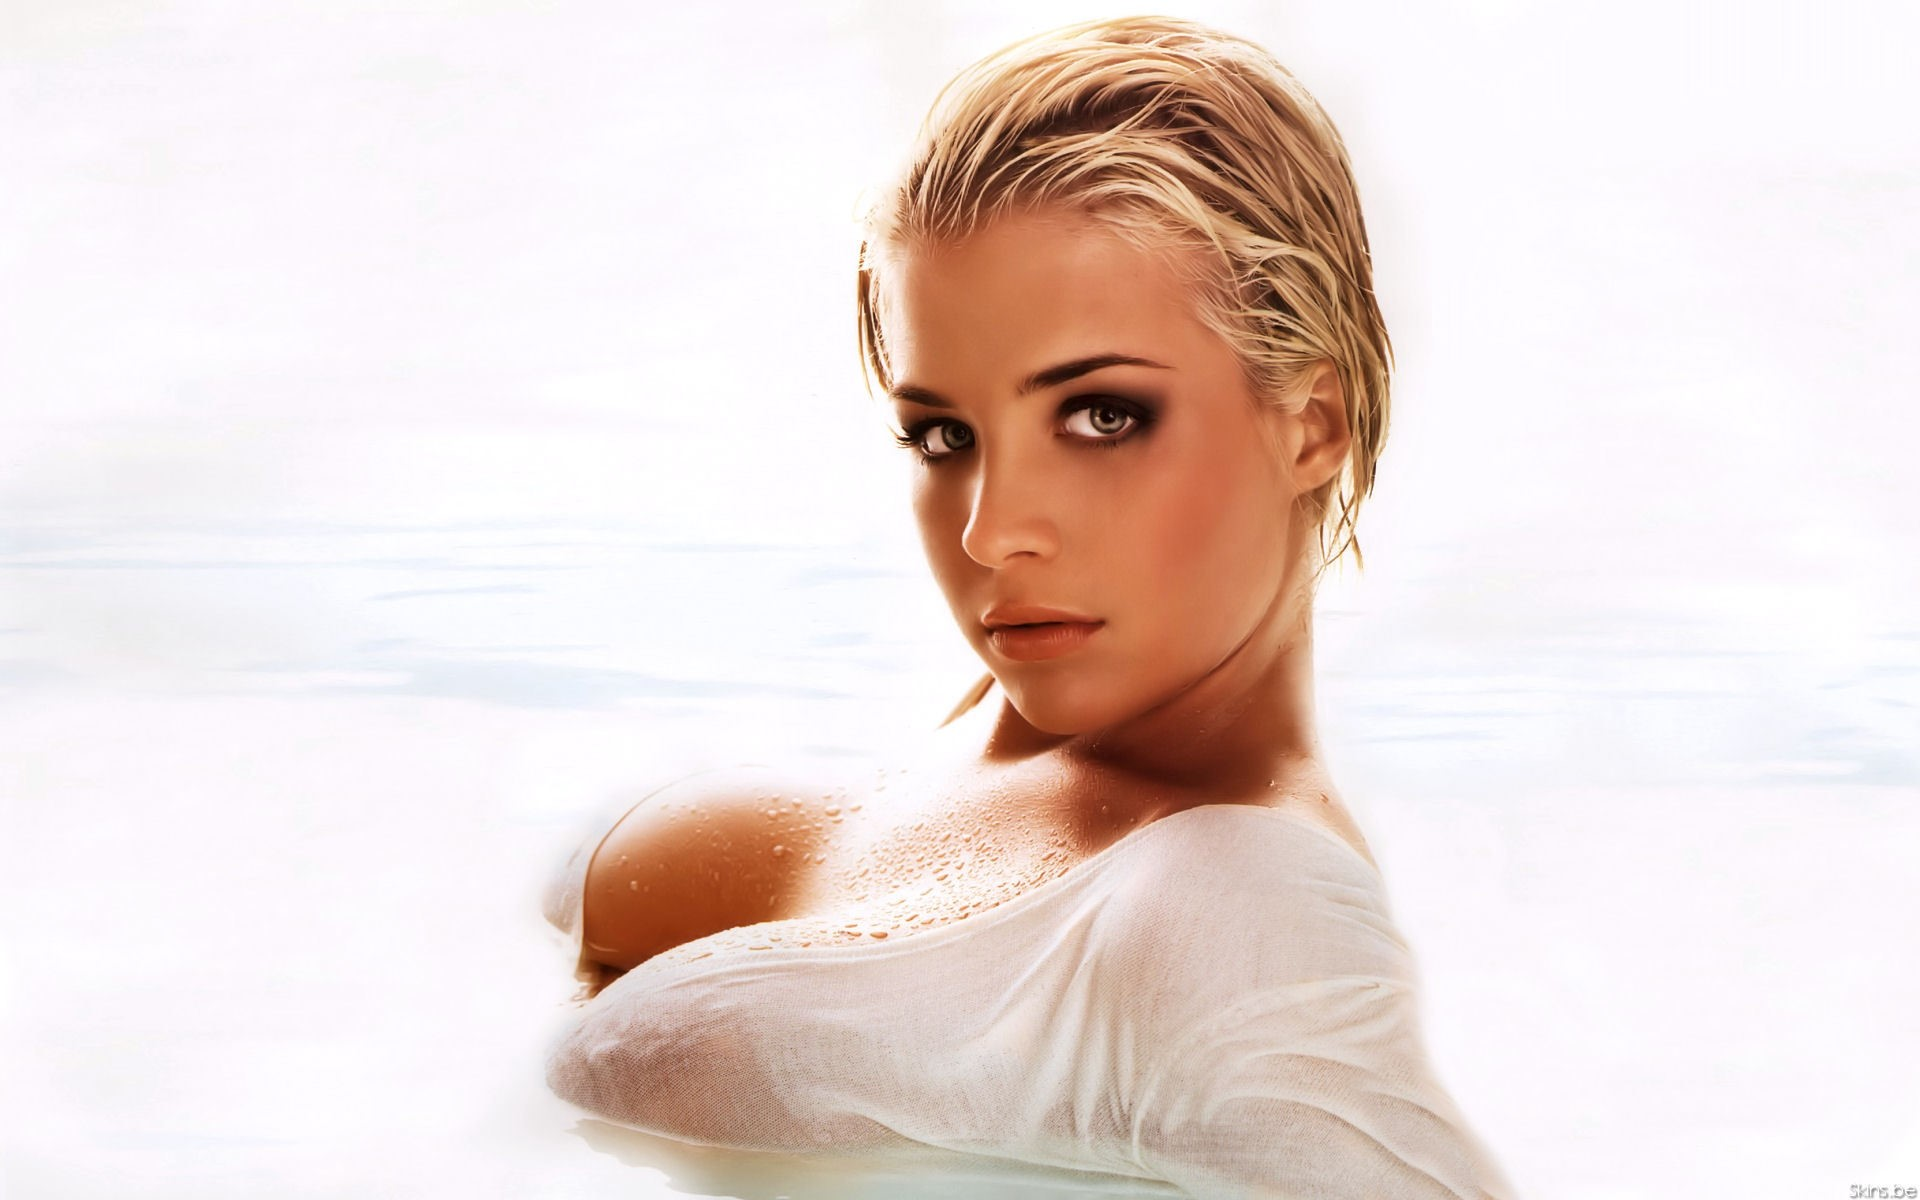 Gemma Atkinson Wallpapers for Computer